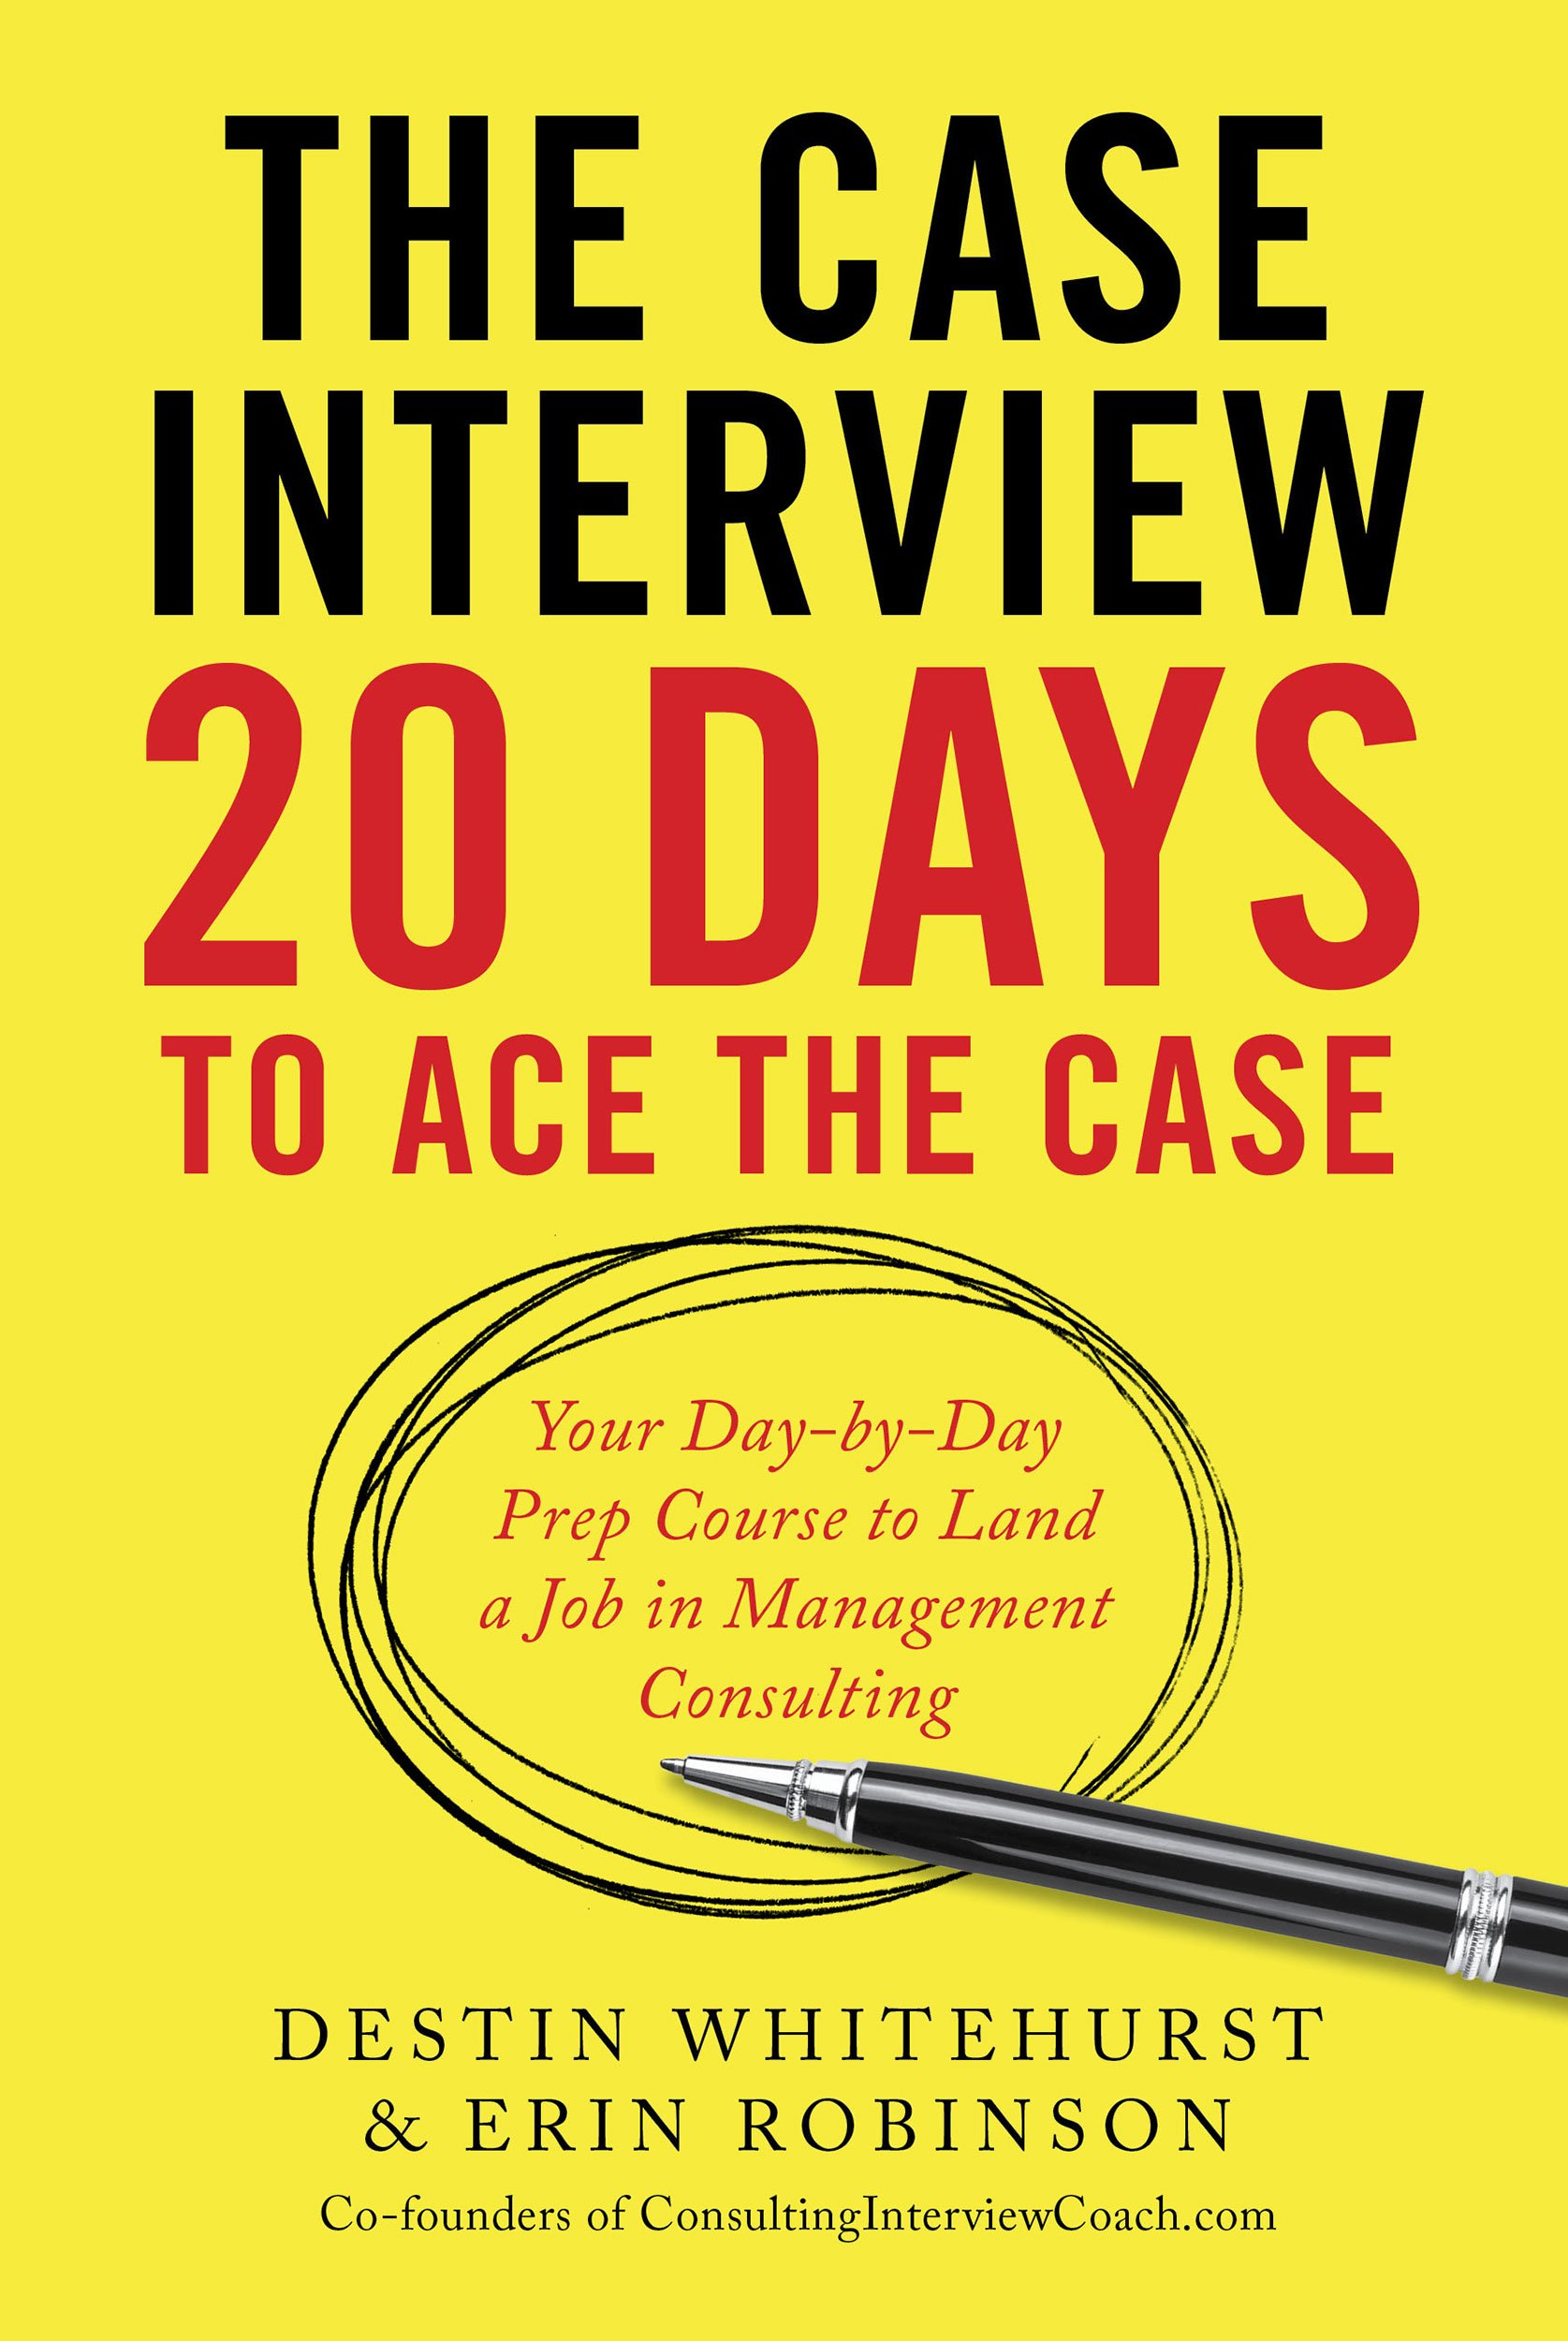 The Case Interview  20 Days To Ace The Case  Your Day By Day Prep Course To Land A Job In Management Consulting  English Edition